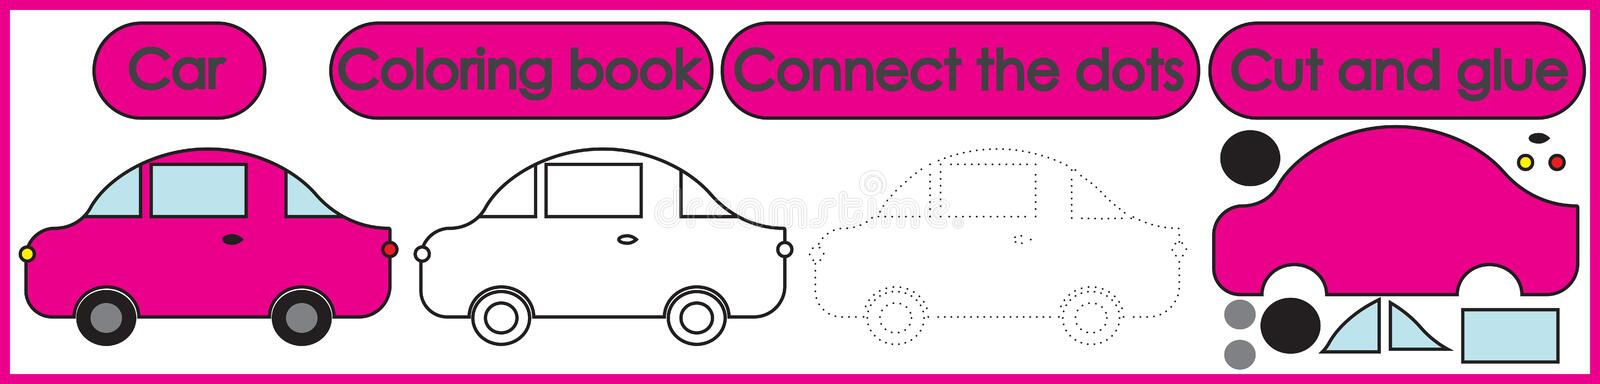 Games for children 3 in 1. Coloring book, connect the dots, cut. And glue. Car cartoon. Vector illustration stock illustration